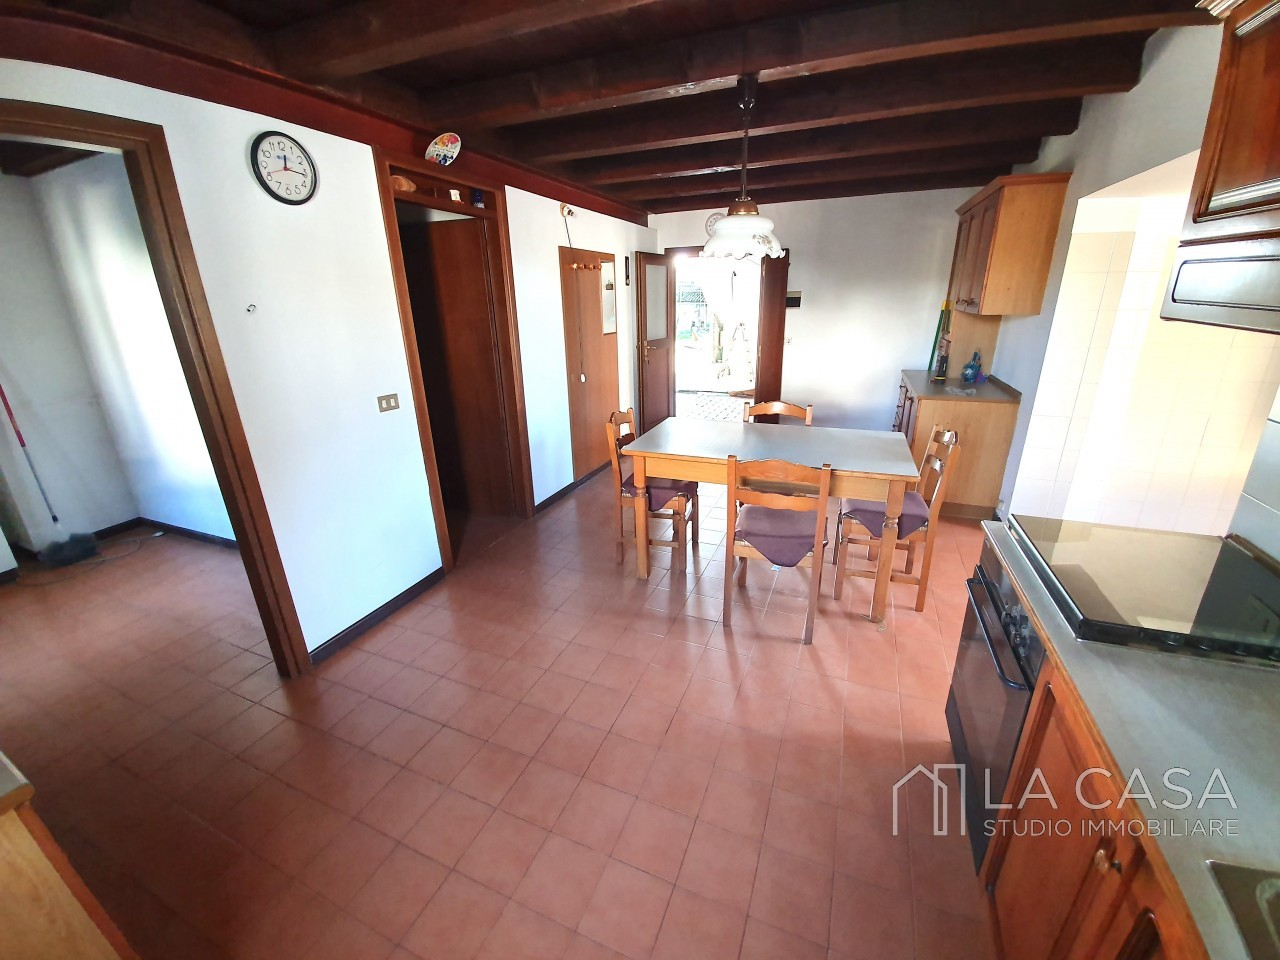 Casa indipendente in Linea - Rif.C6 https://images.gestionaleimmobiliare.it/foto/annunci/191125/2114313/1280x1280/005__20191125_115643_wmk_0.jpg